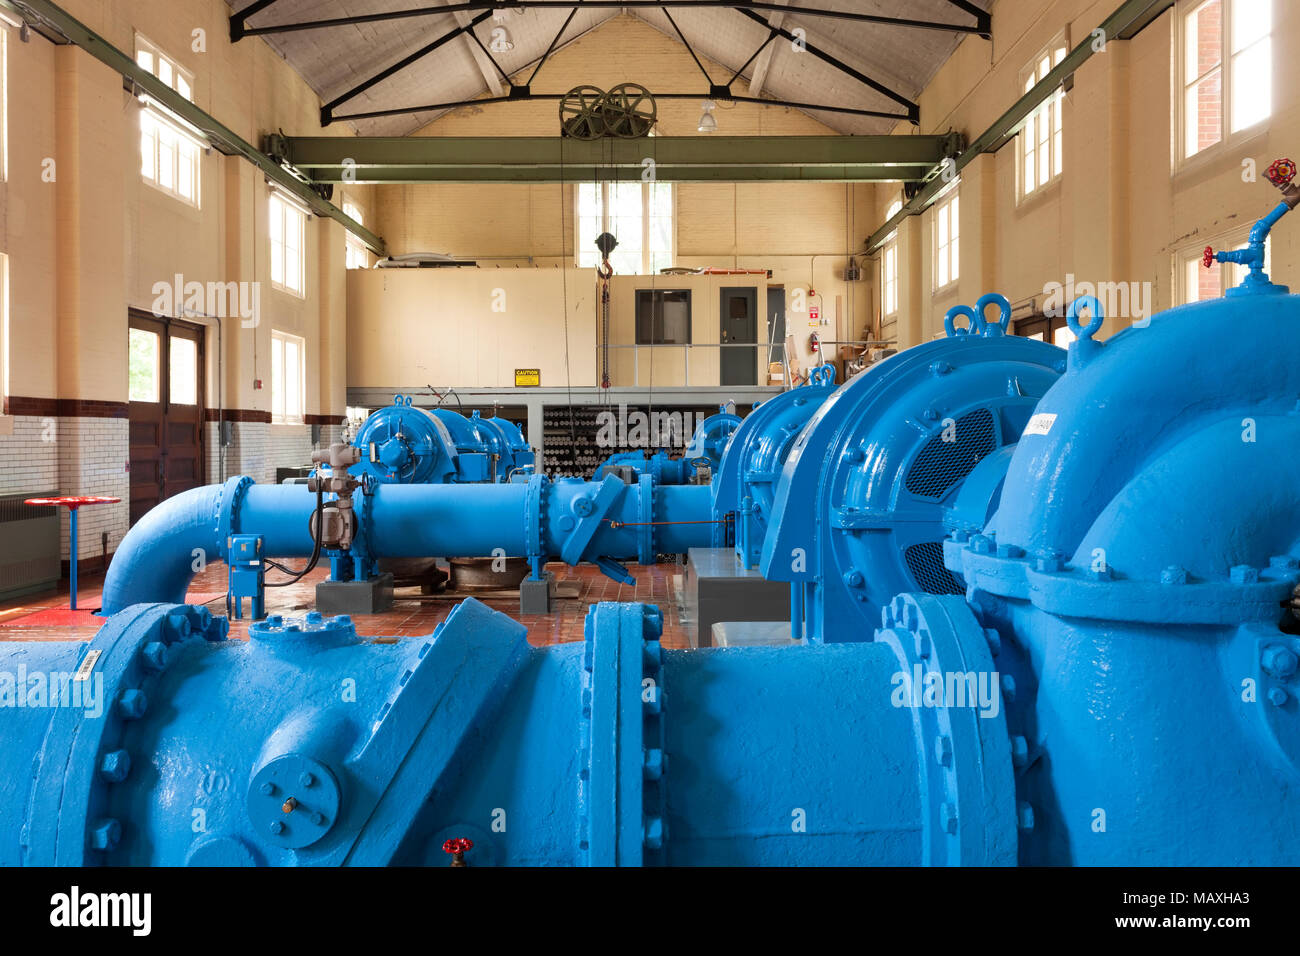 The pumping hall that houses the water pumps at Toronto's High Level Pumping Station. Toronto, Ontario, Canada. - Stock Image